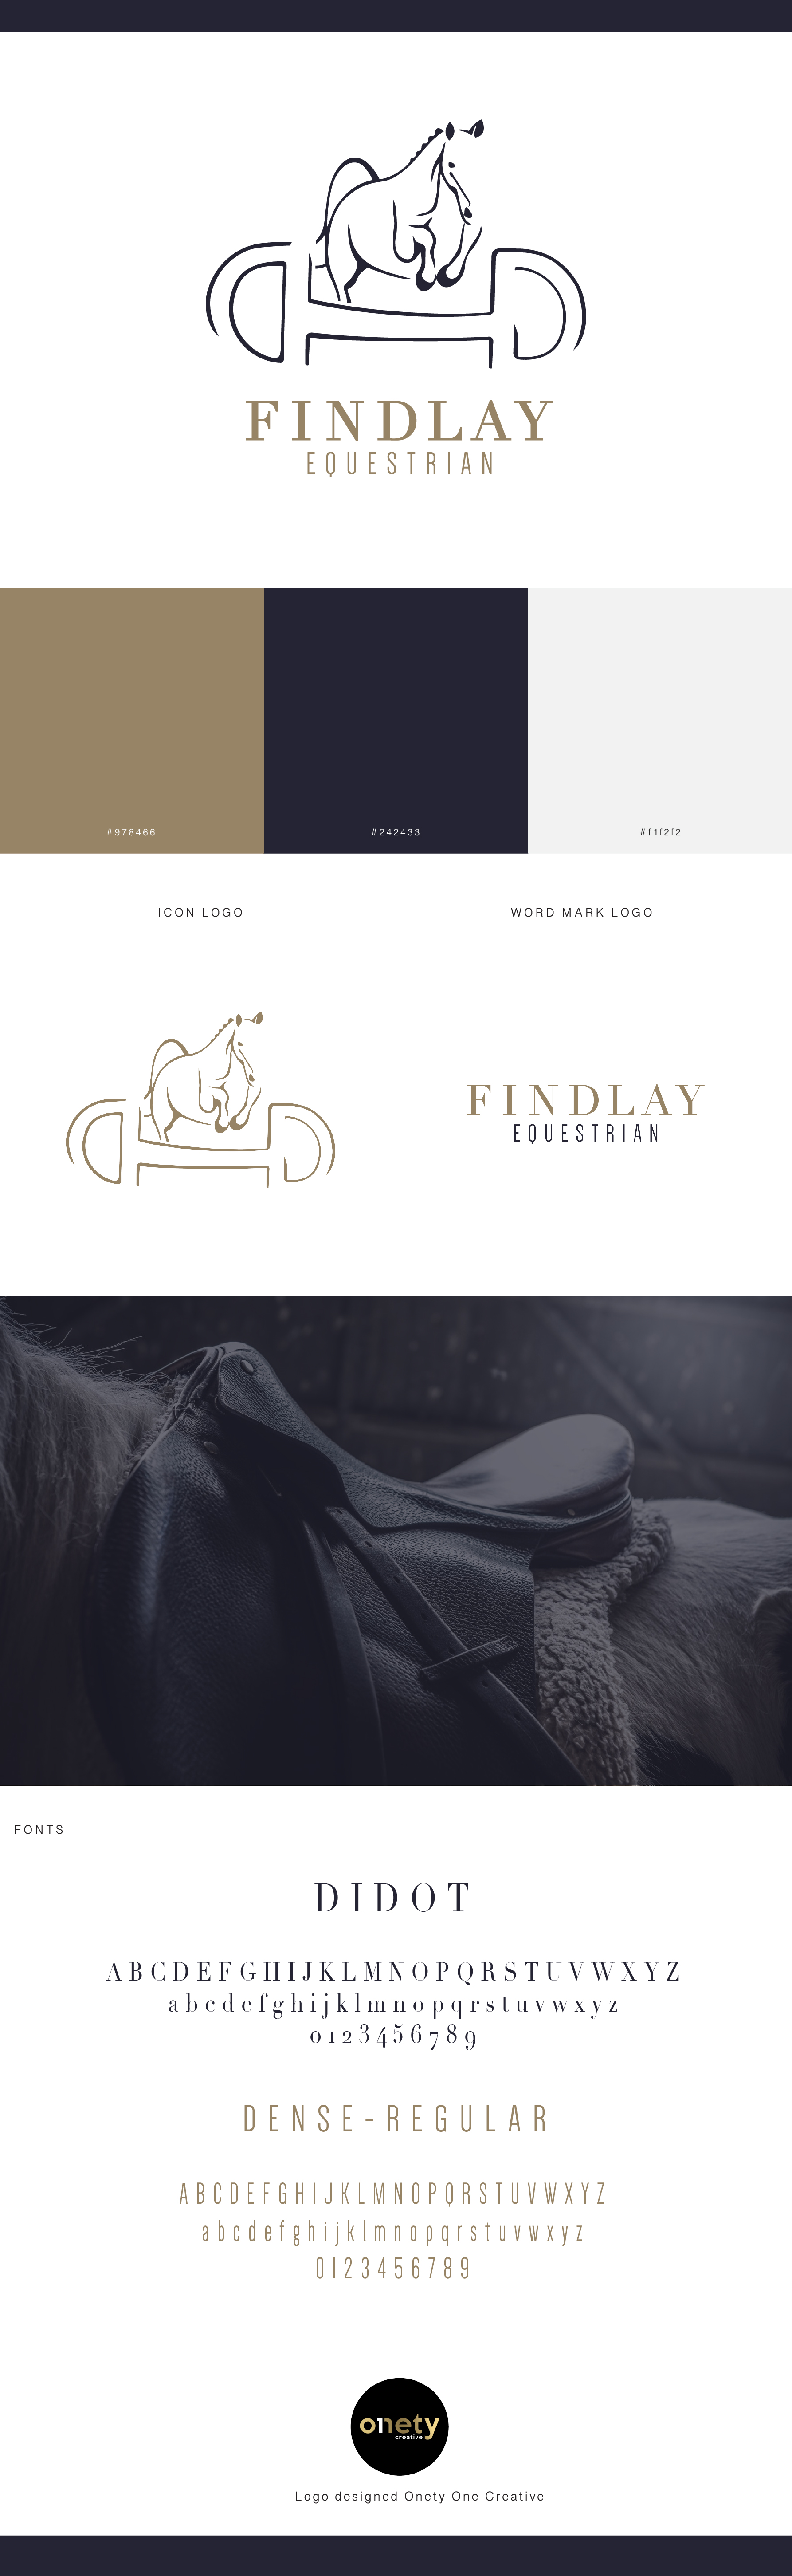 Style guide for Findlay Equestrian